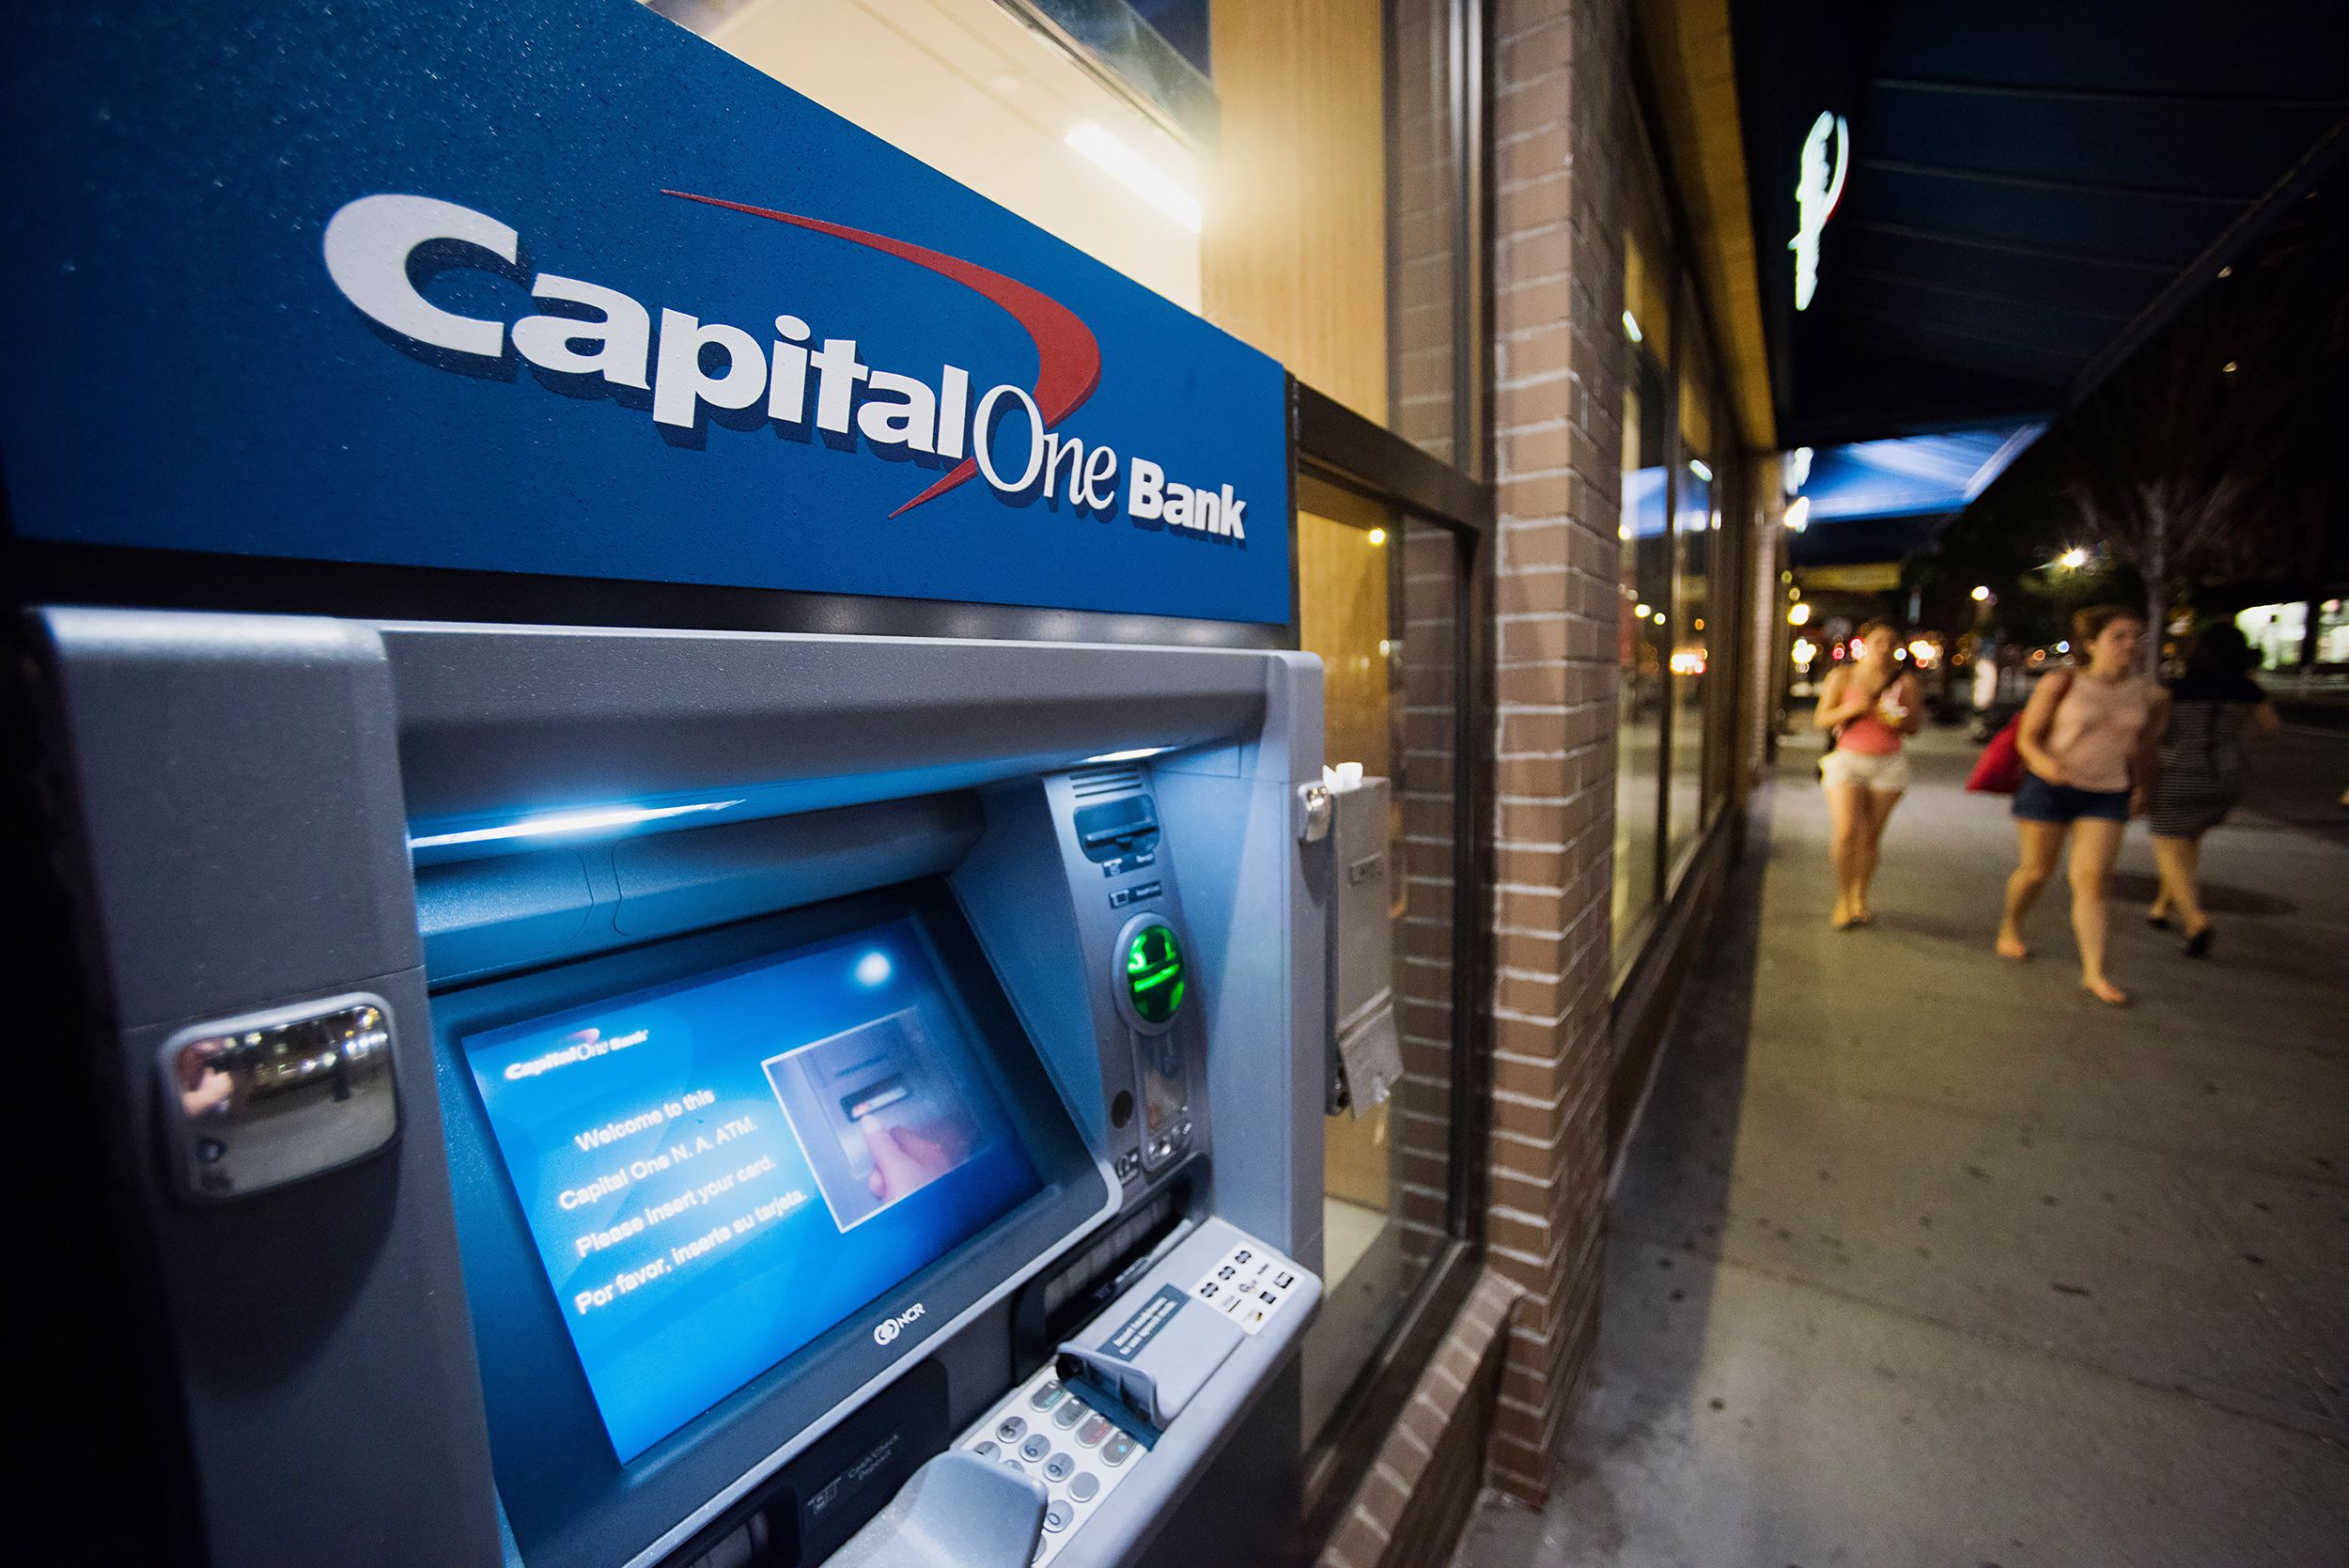 Capital One shares dive after data breach affecting 100 million